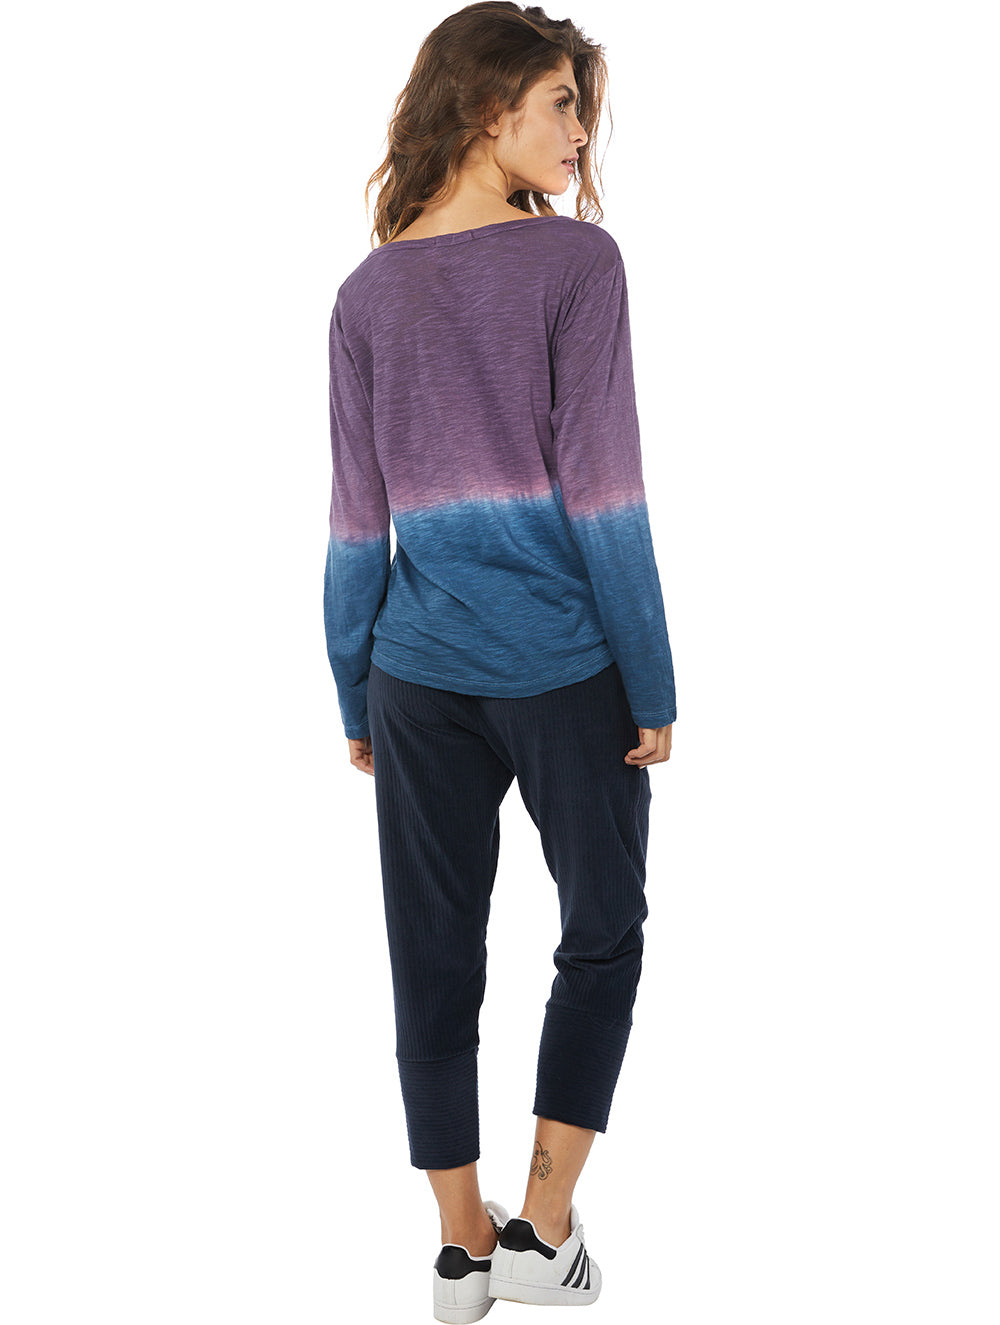 Mica Long-Sleeve T-Shirt